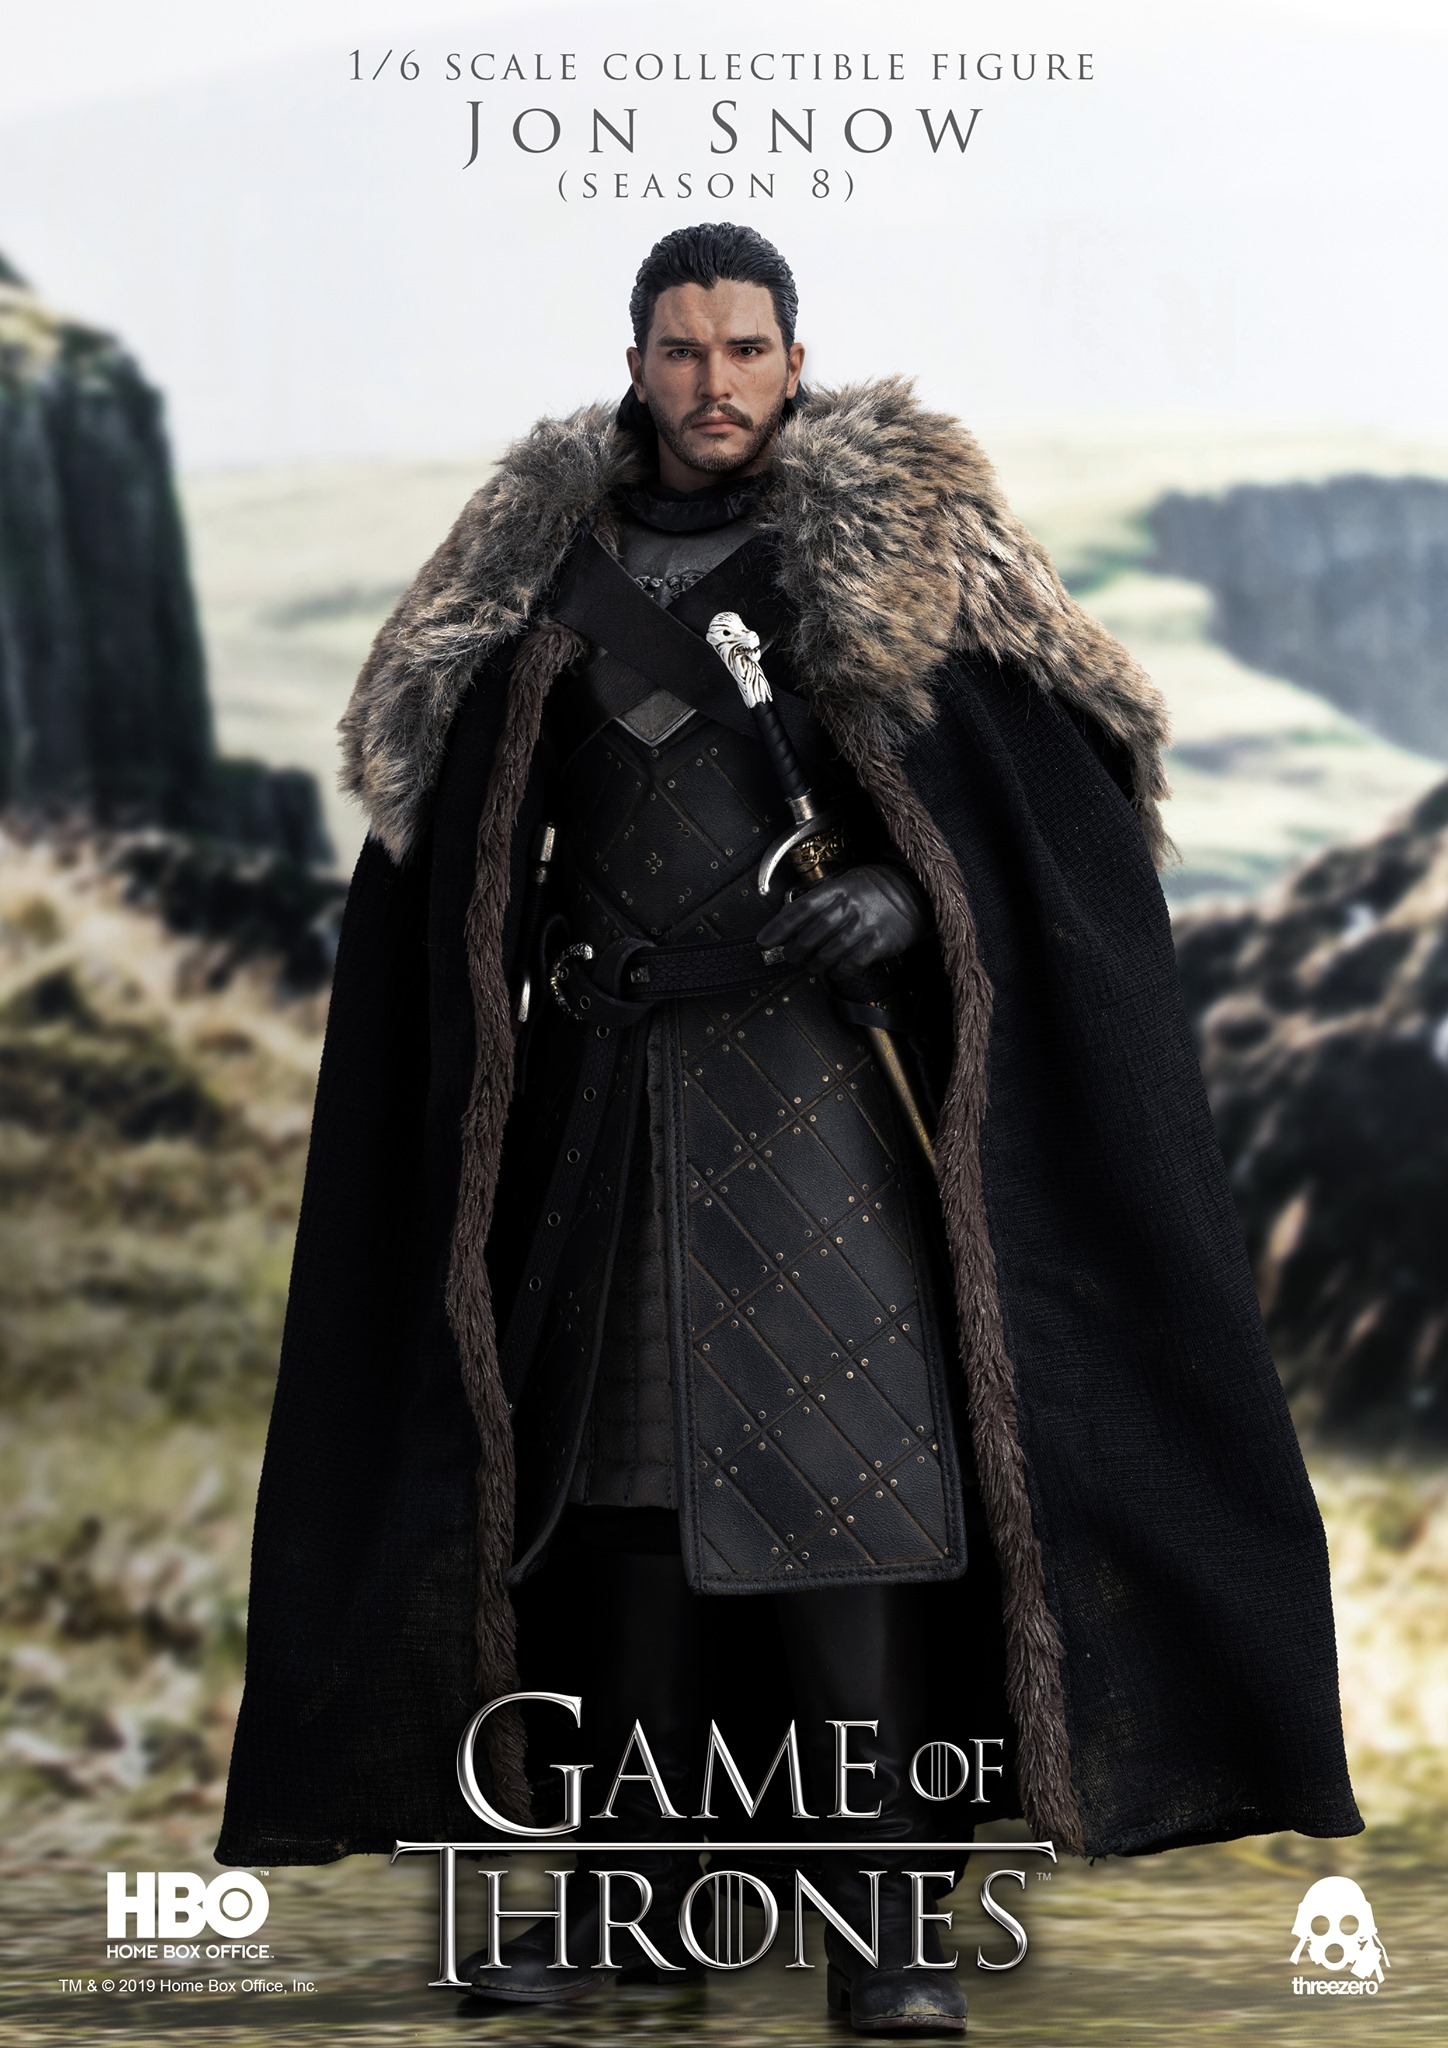 Game of Thrones - Jon Snow (Season 8) 1/6 Scale Figure by ThreeZero